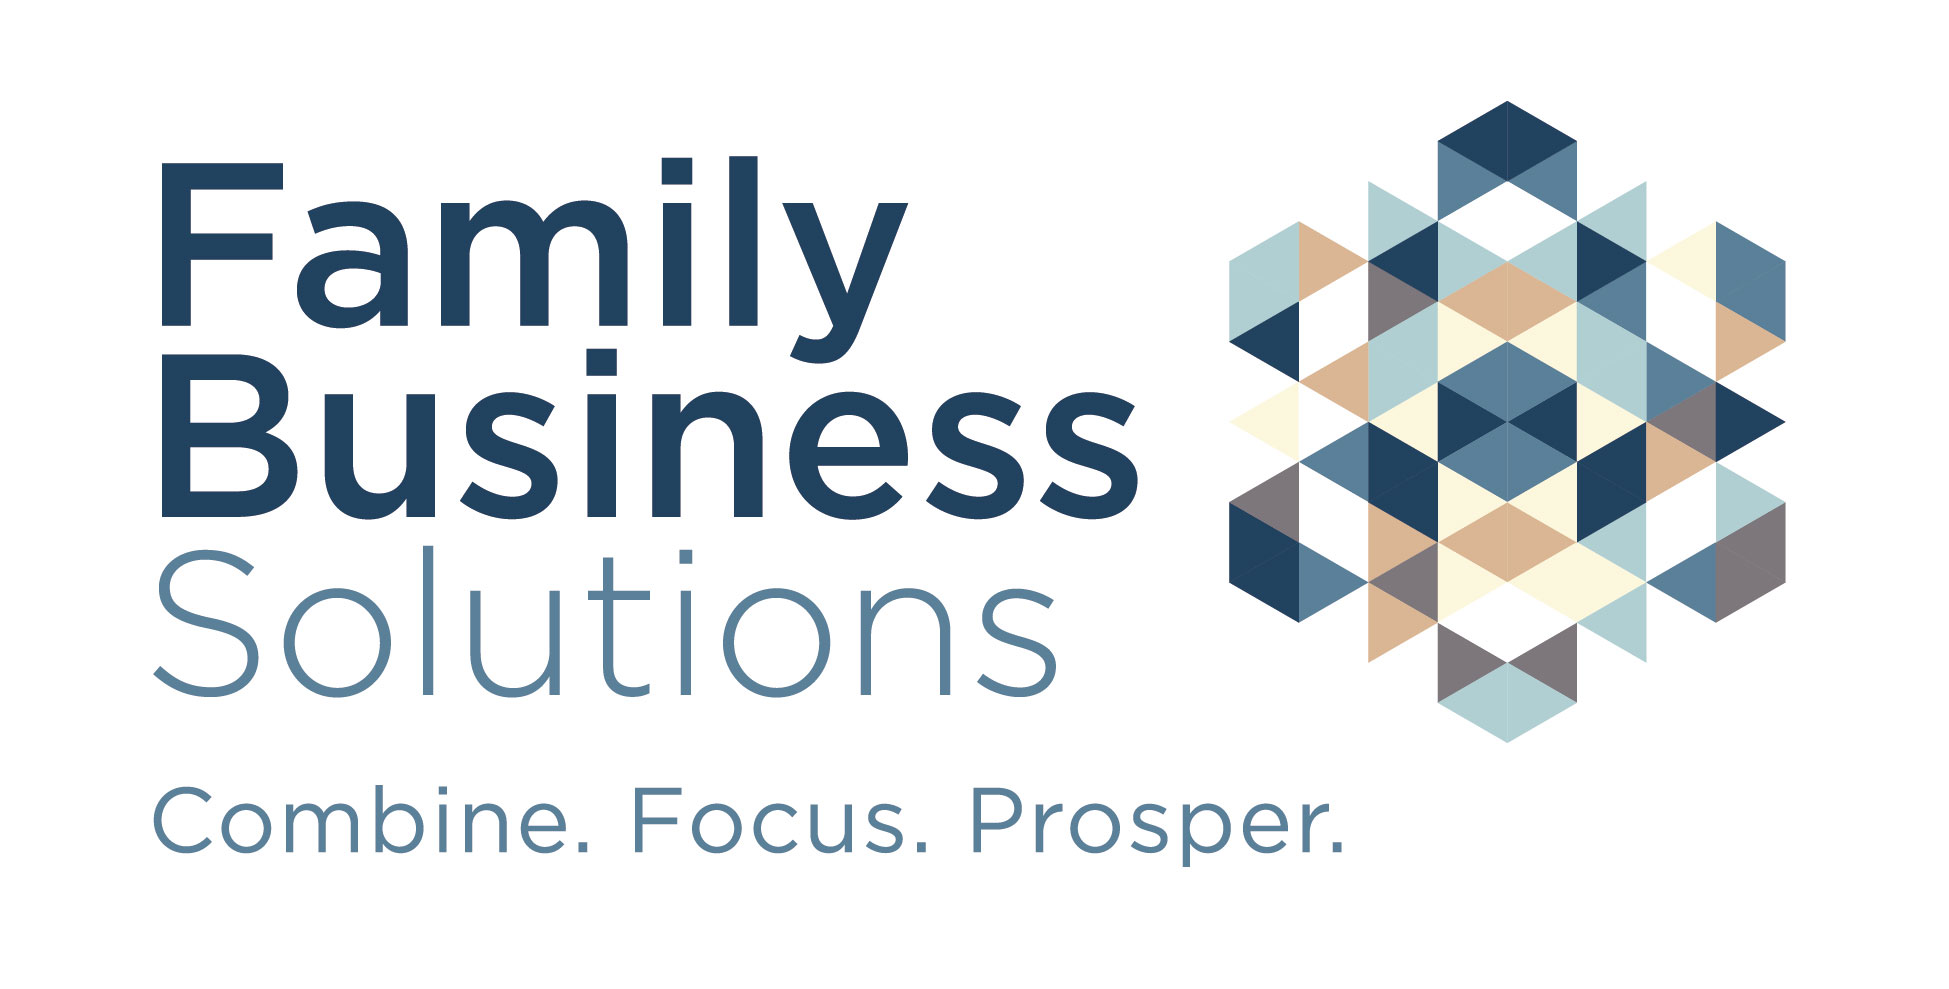 Family Business Solutions